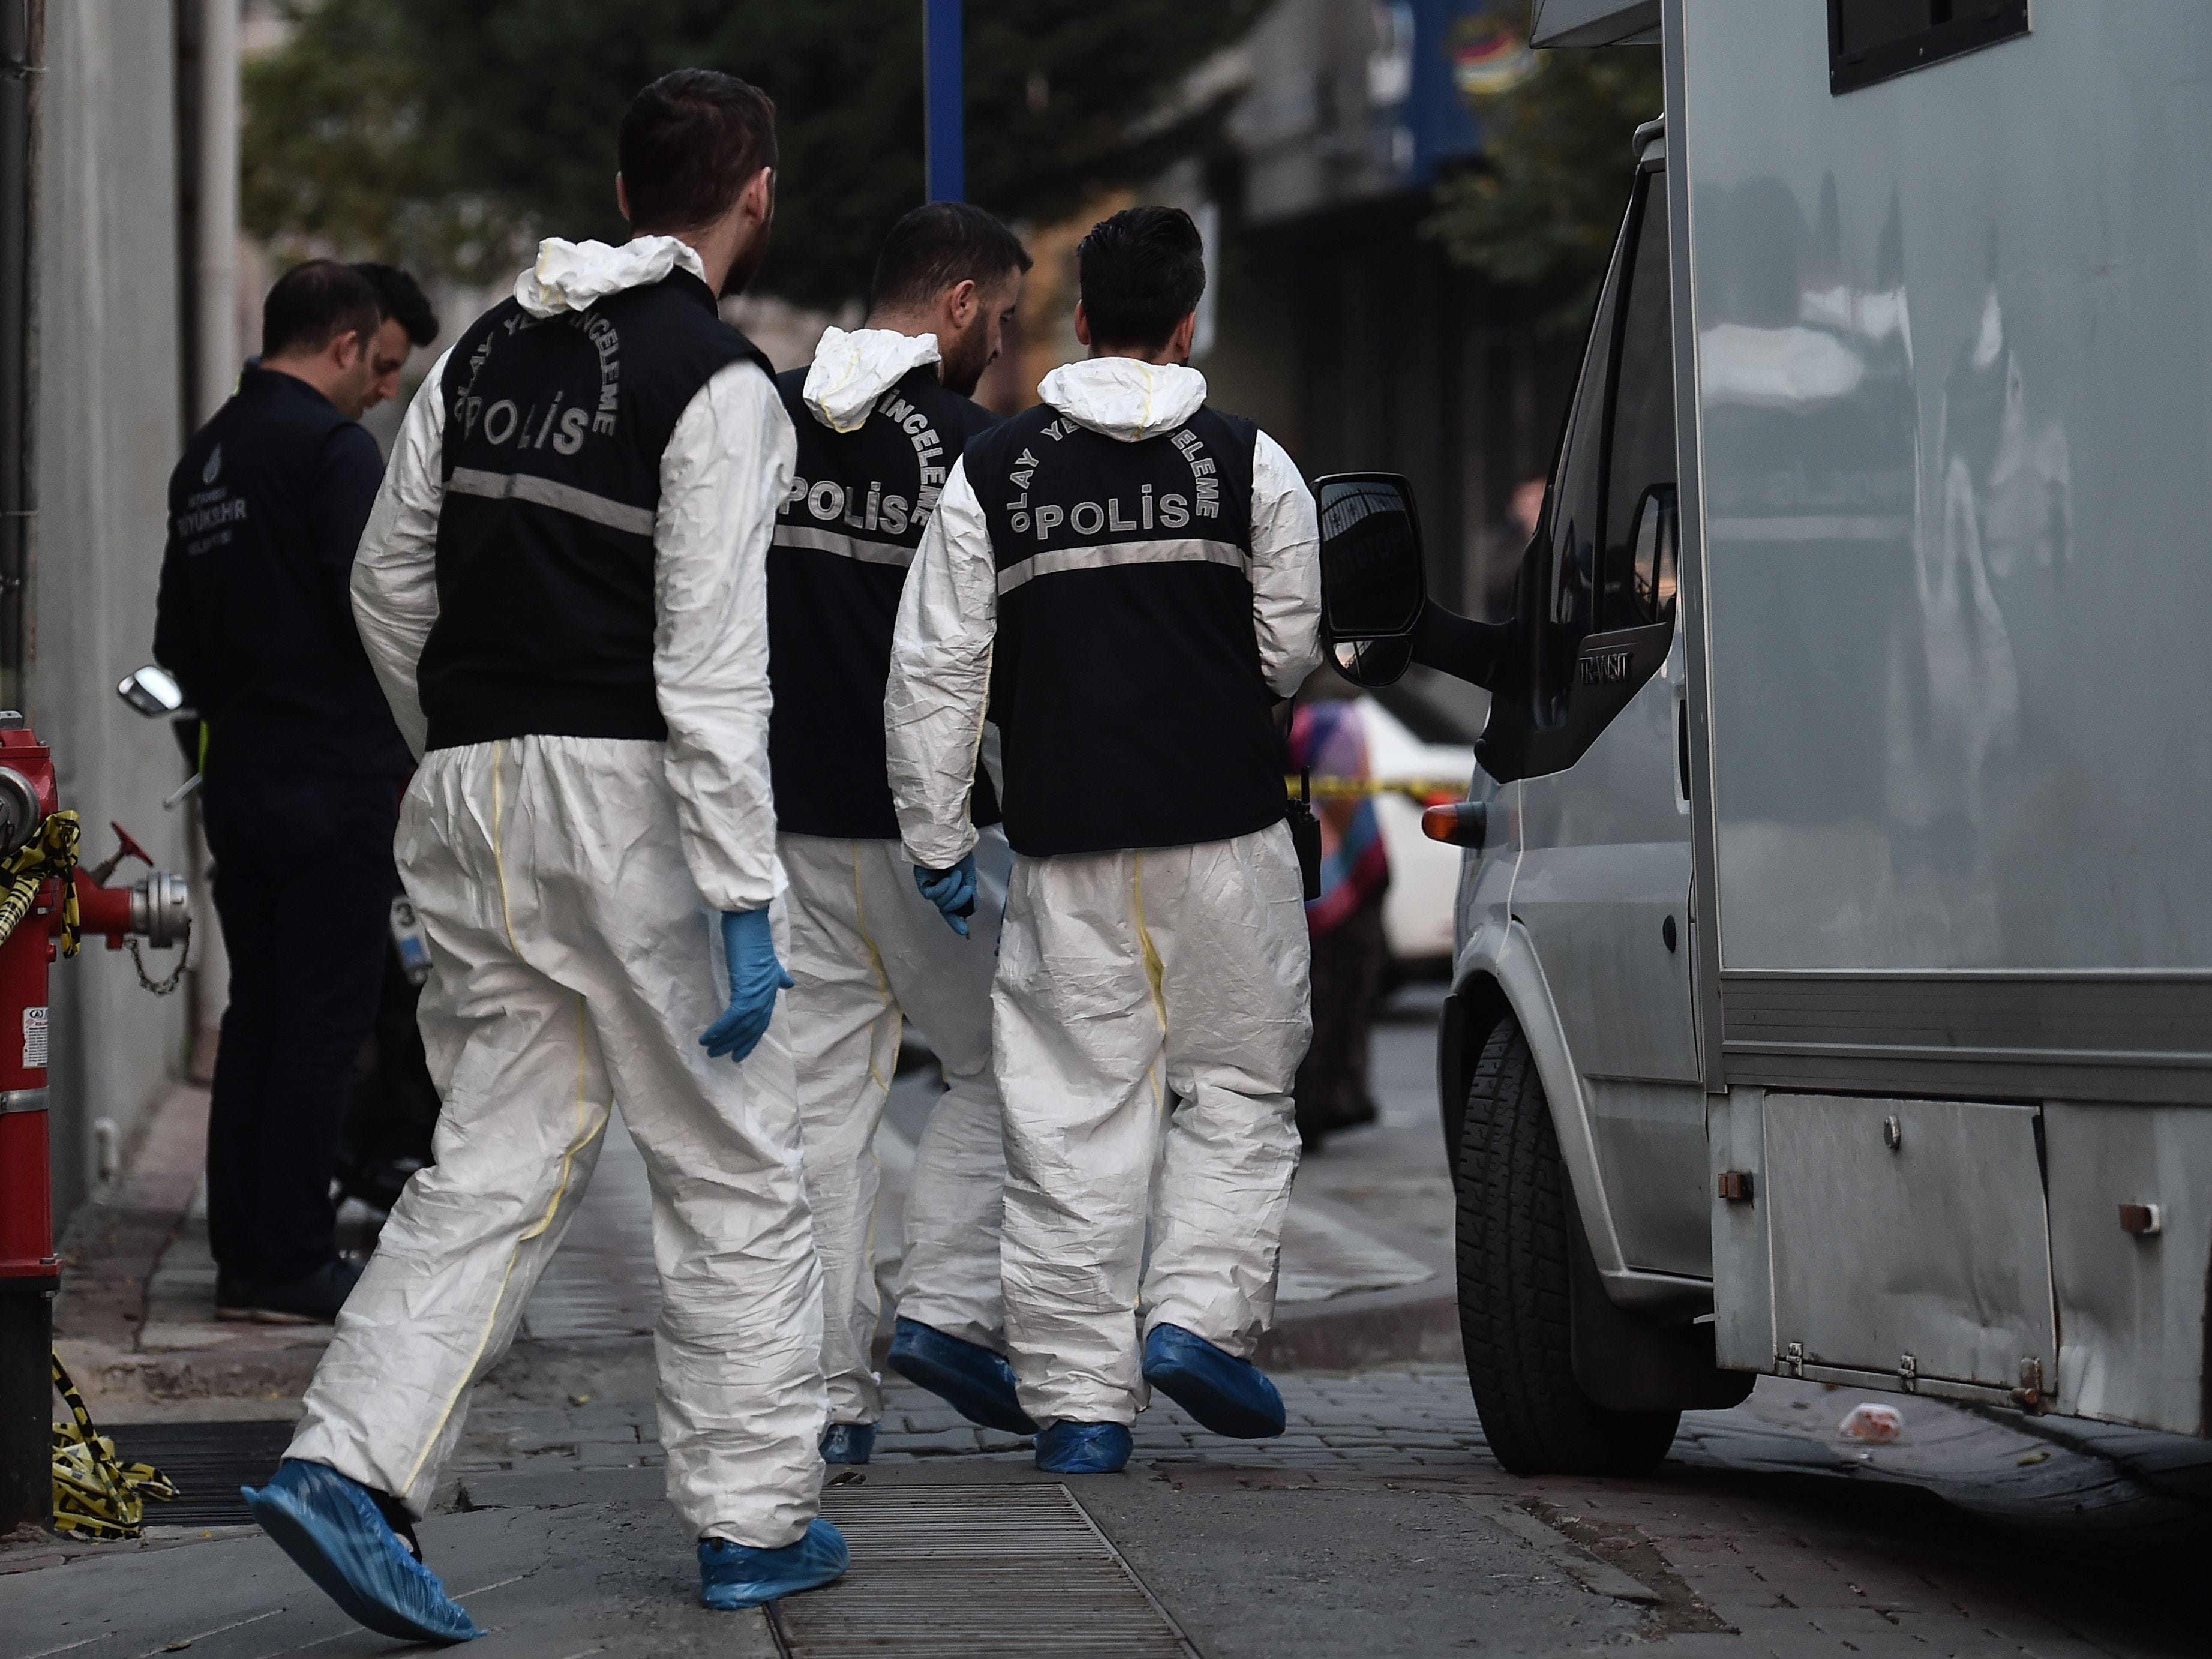 Turkish forensics leave an underground car park cordoned off by Turkish police, Oct. 22, 2018, in Istanbul, after police found an abandoned car belonging to the Saudi consulate, three weeks after the murder of journalist Jamal Khashoggi in the Saudi consulate.